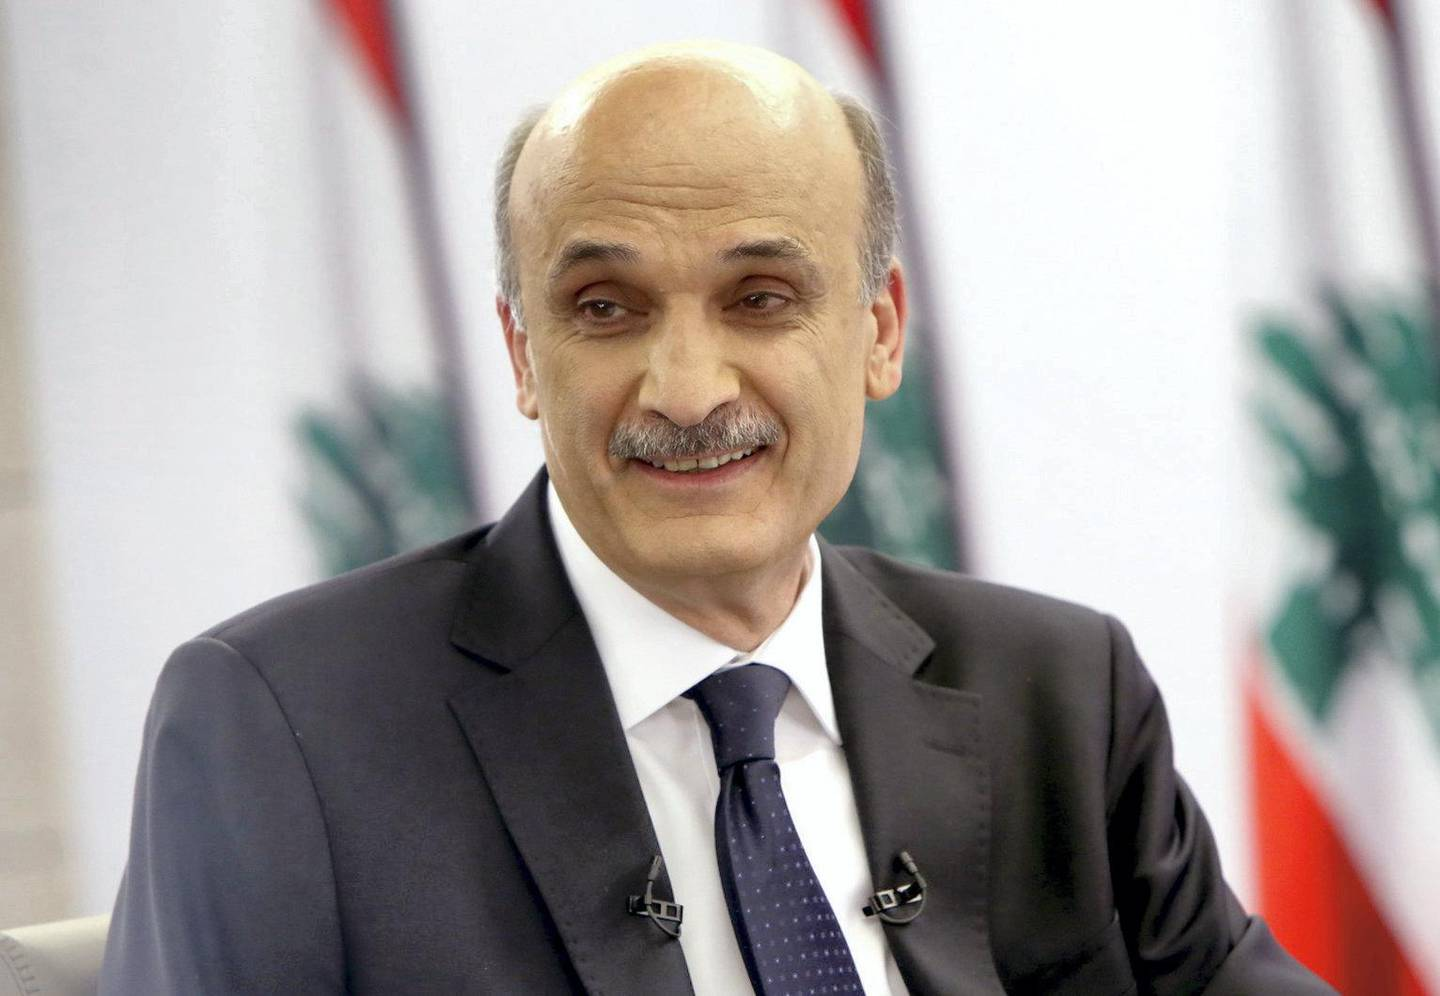 """A handout picture distributed by Lebanon's leading anti-Damascus Christian party Samir Geagea's press office on April 24, 2014 shows him during the broadcast of a special political show by Lebanese Broadcasting Corporation (LBC) station in Beirut. Geagea will run for the presidency in May, his Christian Lebanese Forces party announced on April 4, 2014 in a controversial move given his role in the 1975-1990 civil war and his opposition to Hezbollah. President Michel Sleiman's mandate ends on May 25 and there has been worries a successor will be hard to find because of disagreements between Lebanon's pro- and anti-Syria regime blocs. AFP PHOTO / GEAGEA'S PRESS OFFICE / ALDO AYOUB === RESTRICTED TO EDITORIAL USE - MANDATORY CREDIT """"AFP PHOTO / GEAGEA'S PRESS OFFICE/ ALDO AYOUB"""" NO MARKETING NO ADVERTISING CAMPAIGNS - DISTRIBUTED AS A SERVICE TO CLIENTS === / AFP PHOTO / GEAGEA'S PRESS OFFICE / ALDO AYOUB"""